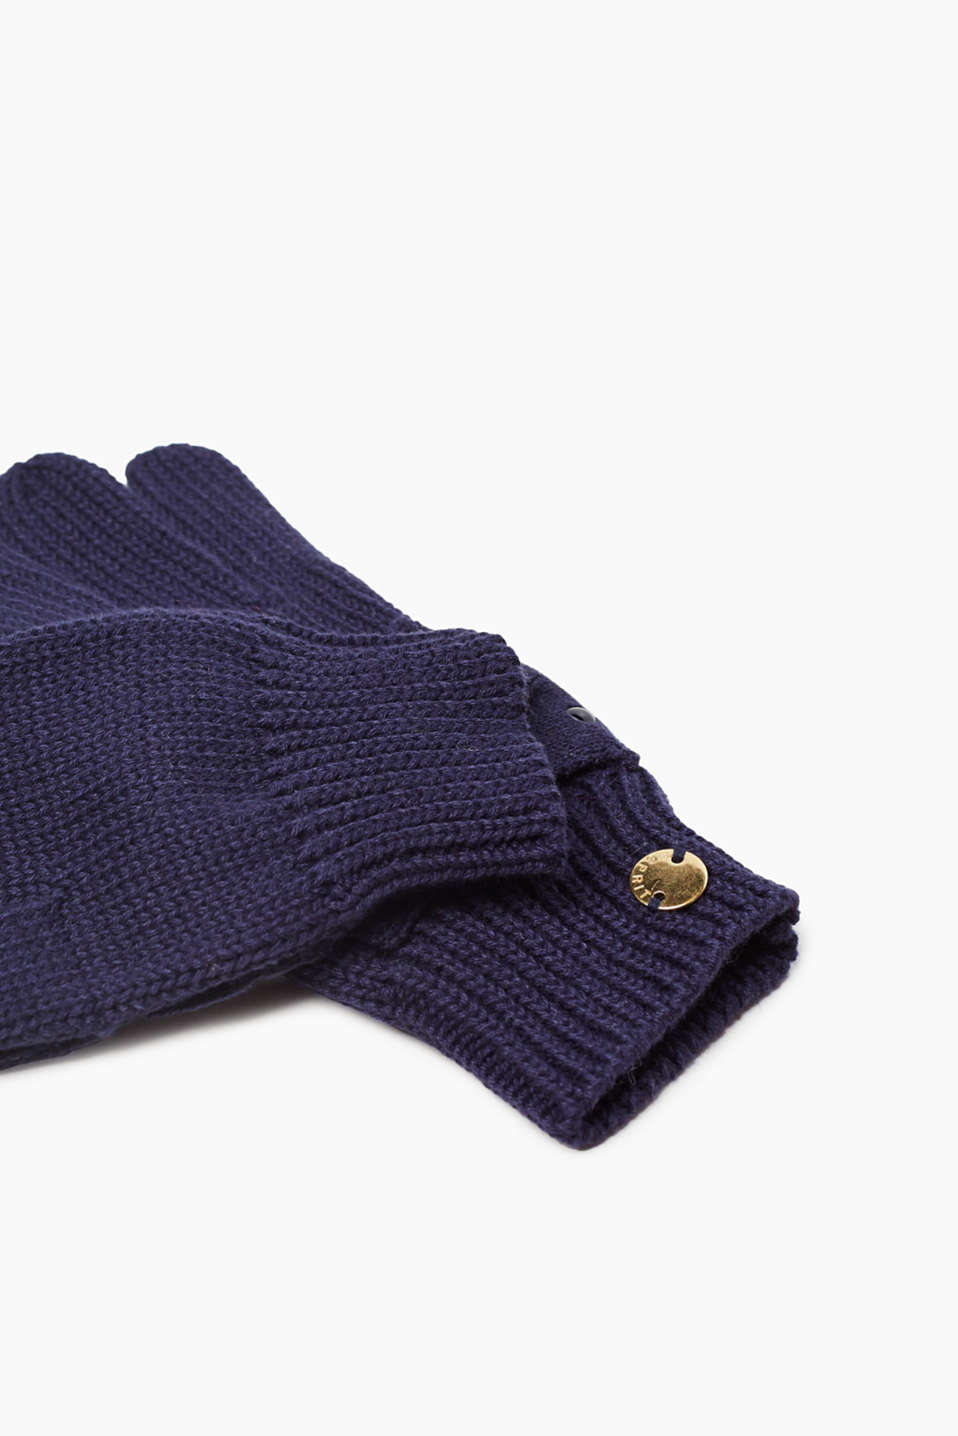 Knitted gloves with a bow detail